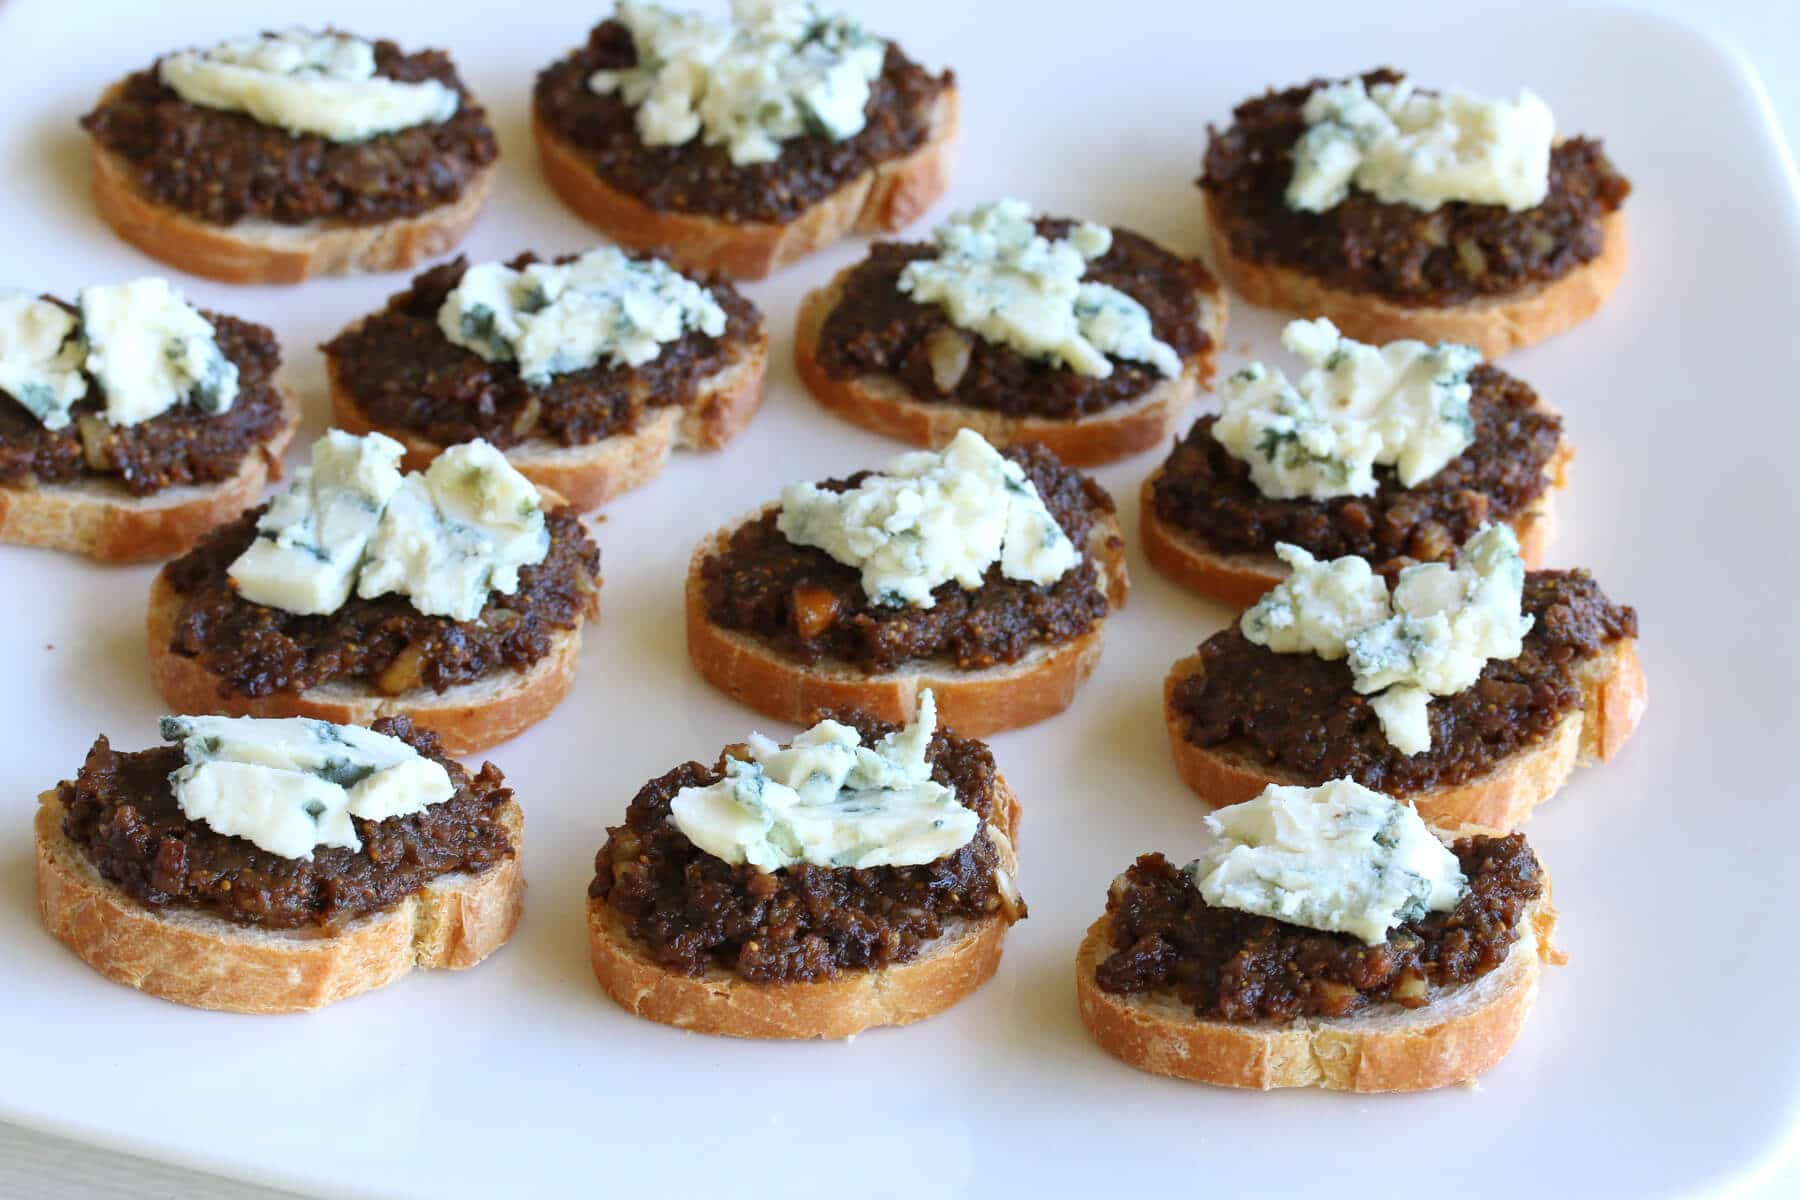 Black Olive & Fig Tapenade with Roquefort - The Daring Gourmet